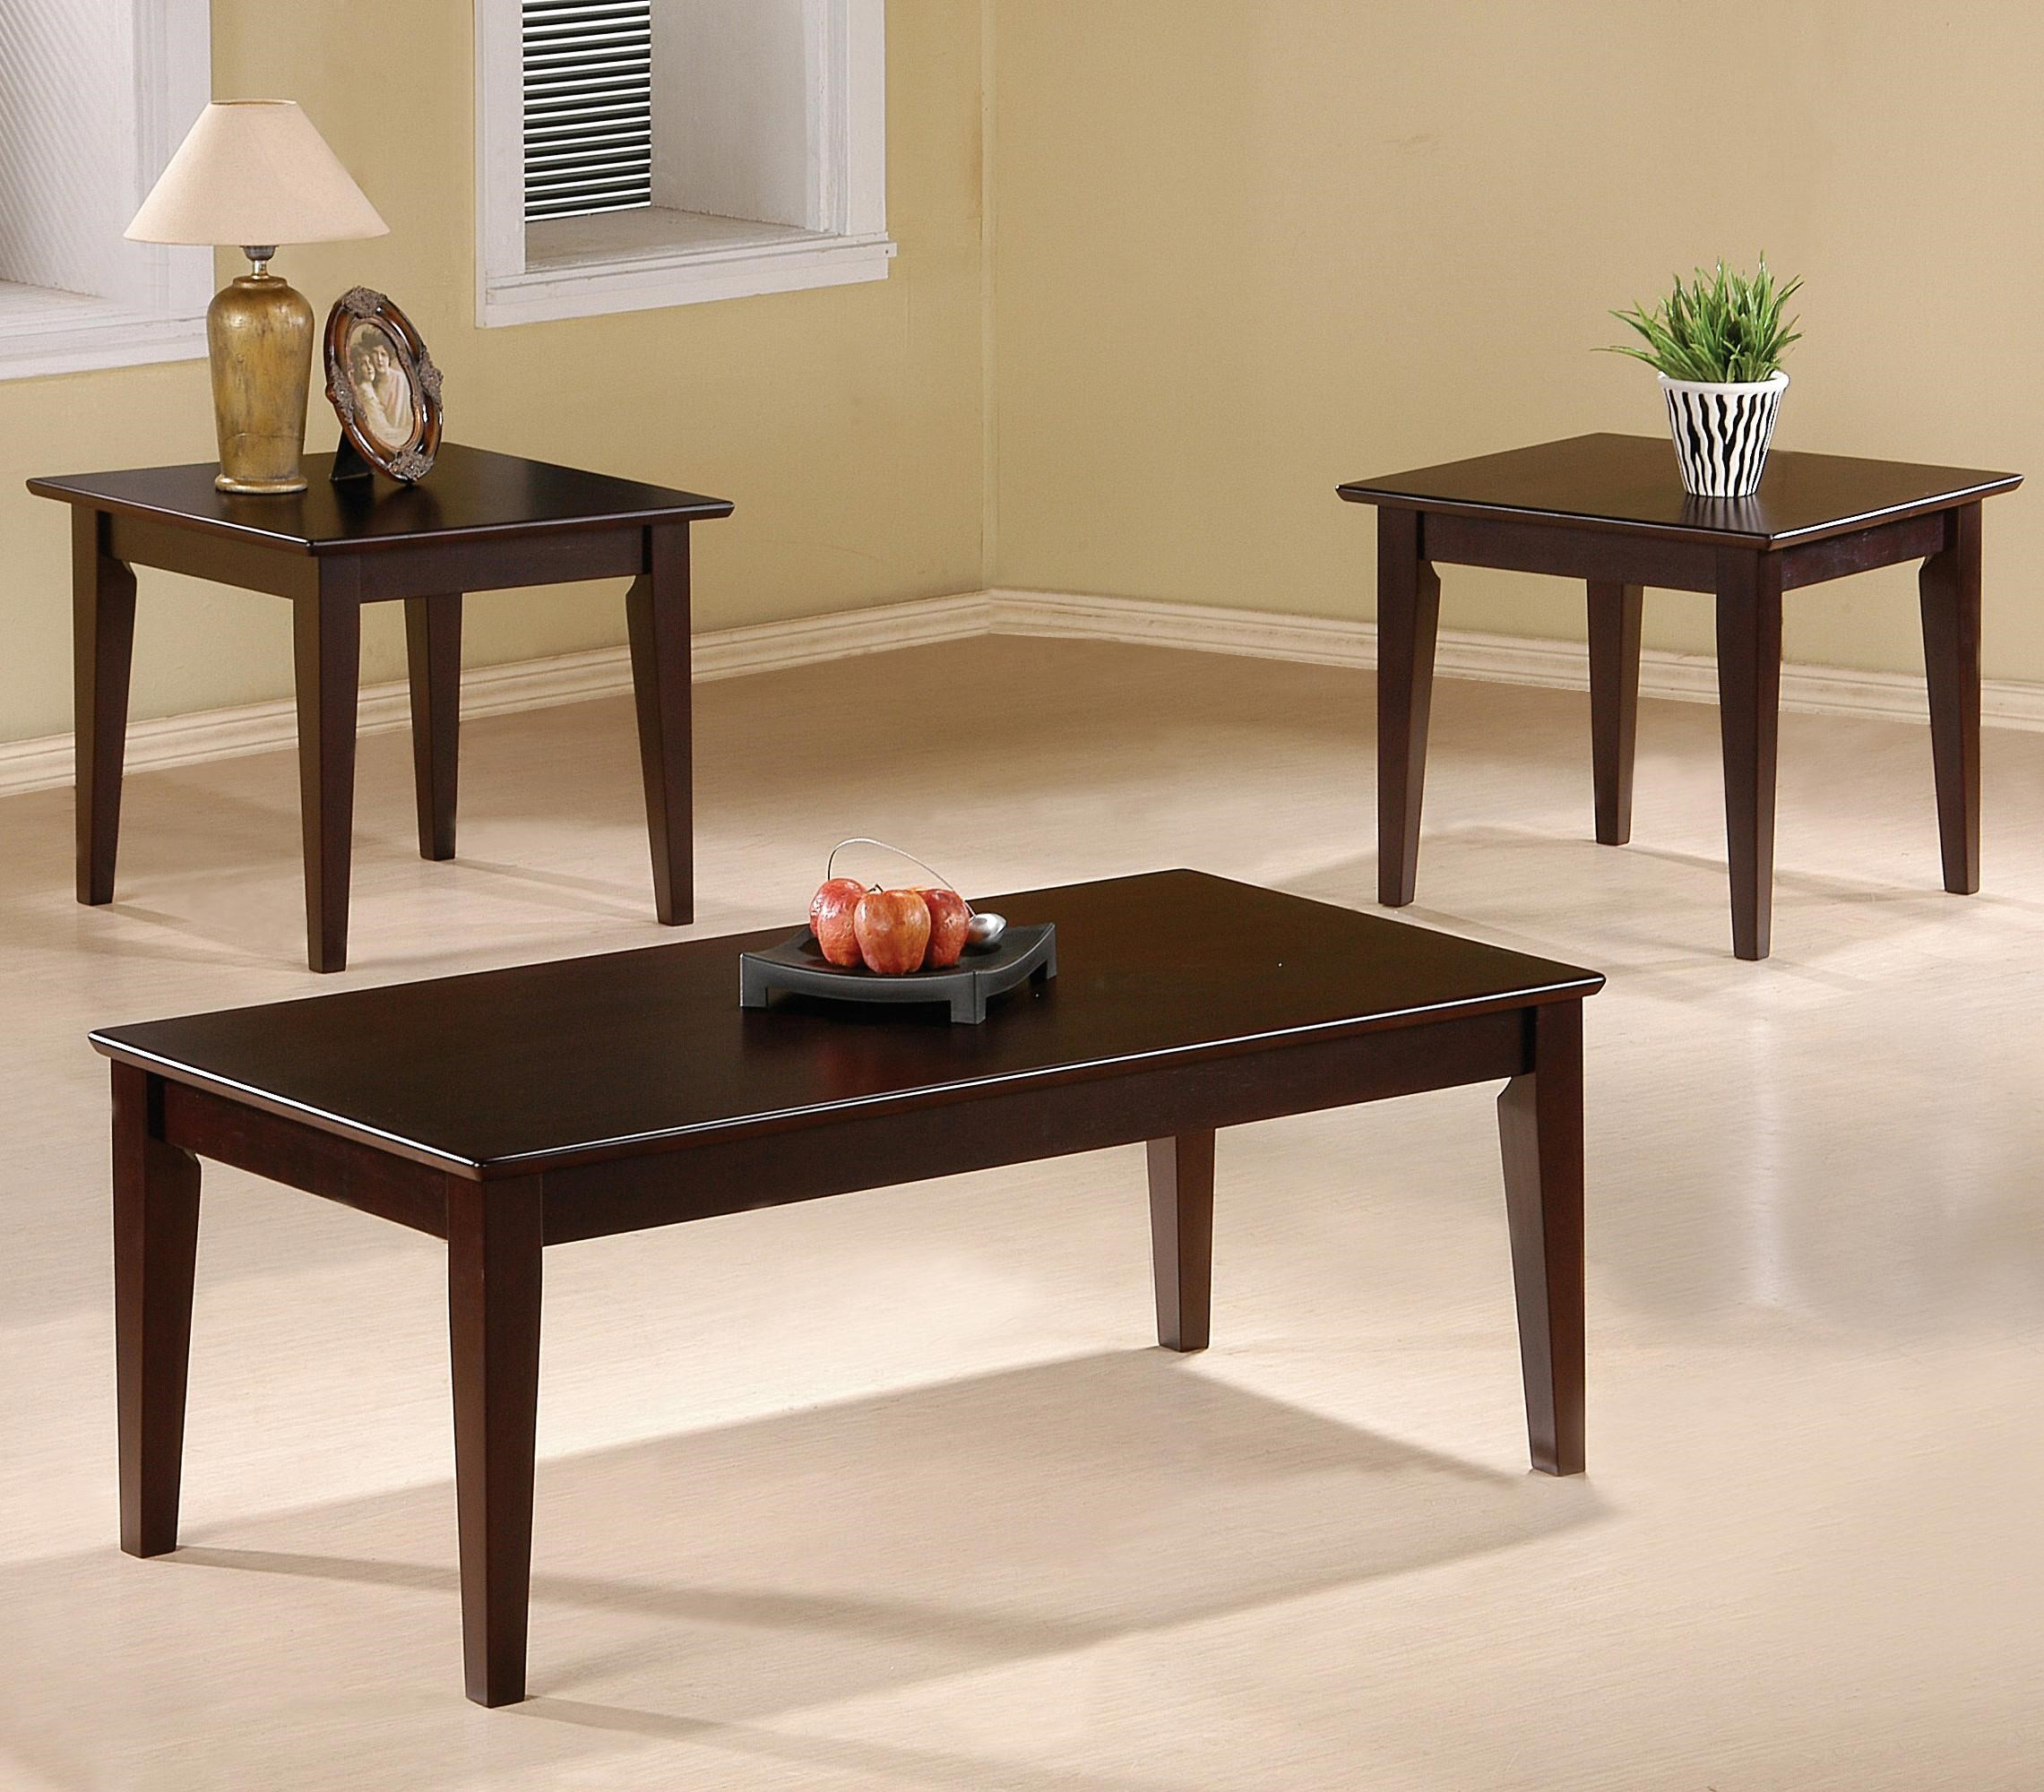 Coaster Occasional Table Sets 3 Piece Occasional Table Set with Tapered Legs : 3 piece occasional table set - pezcame.com